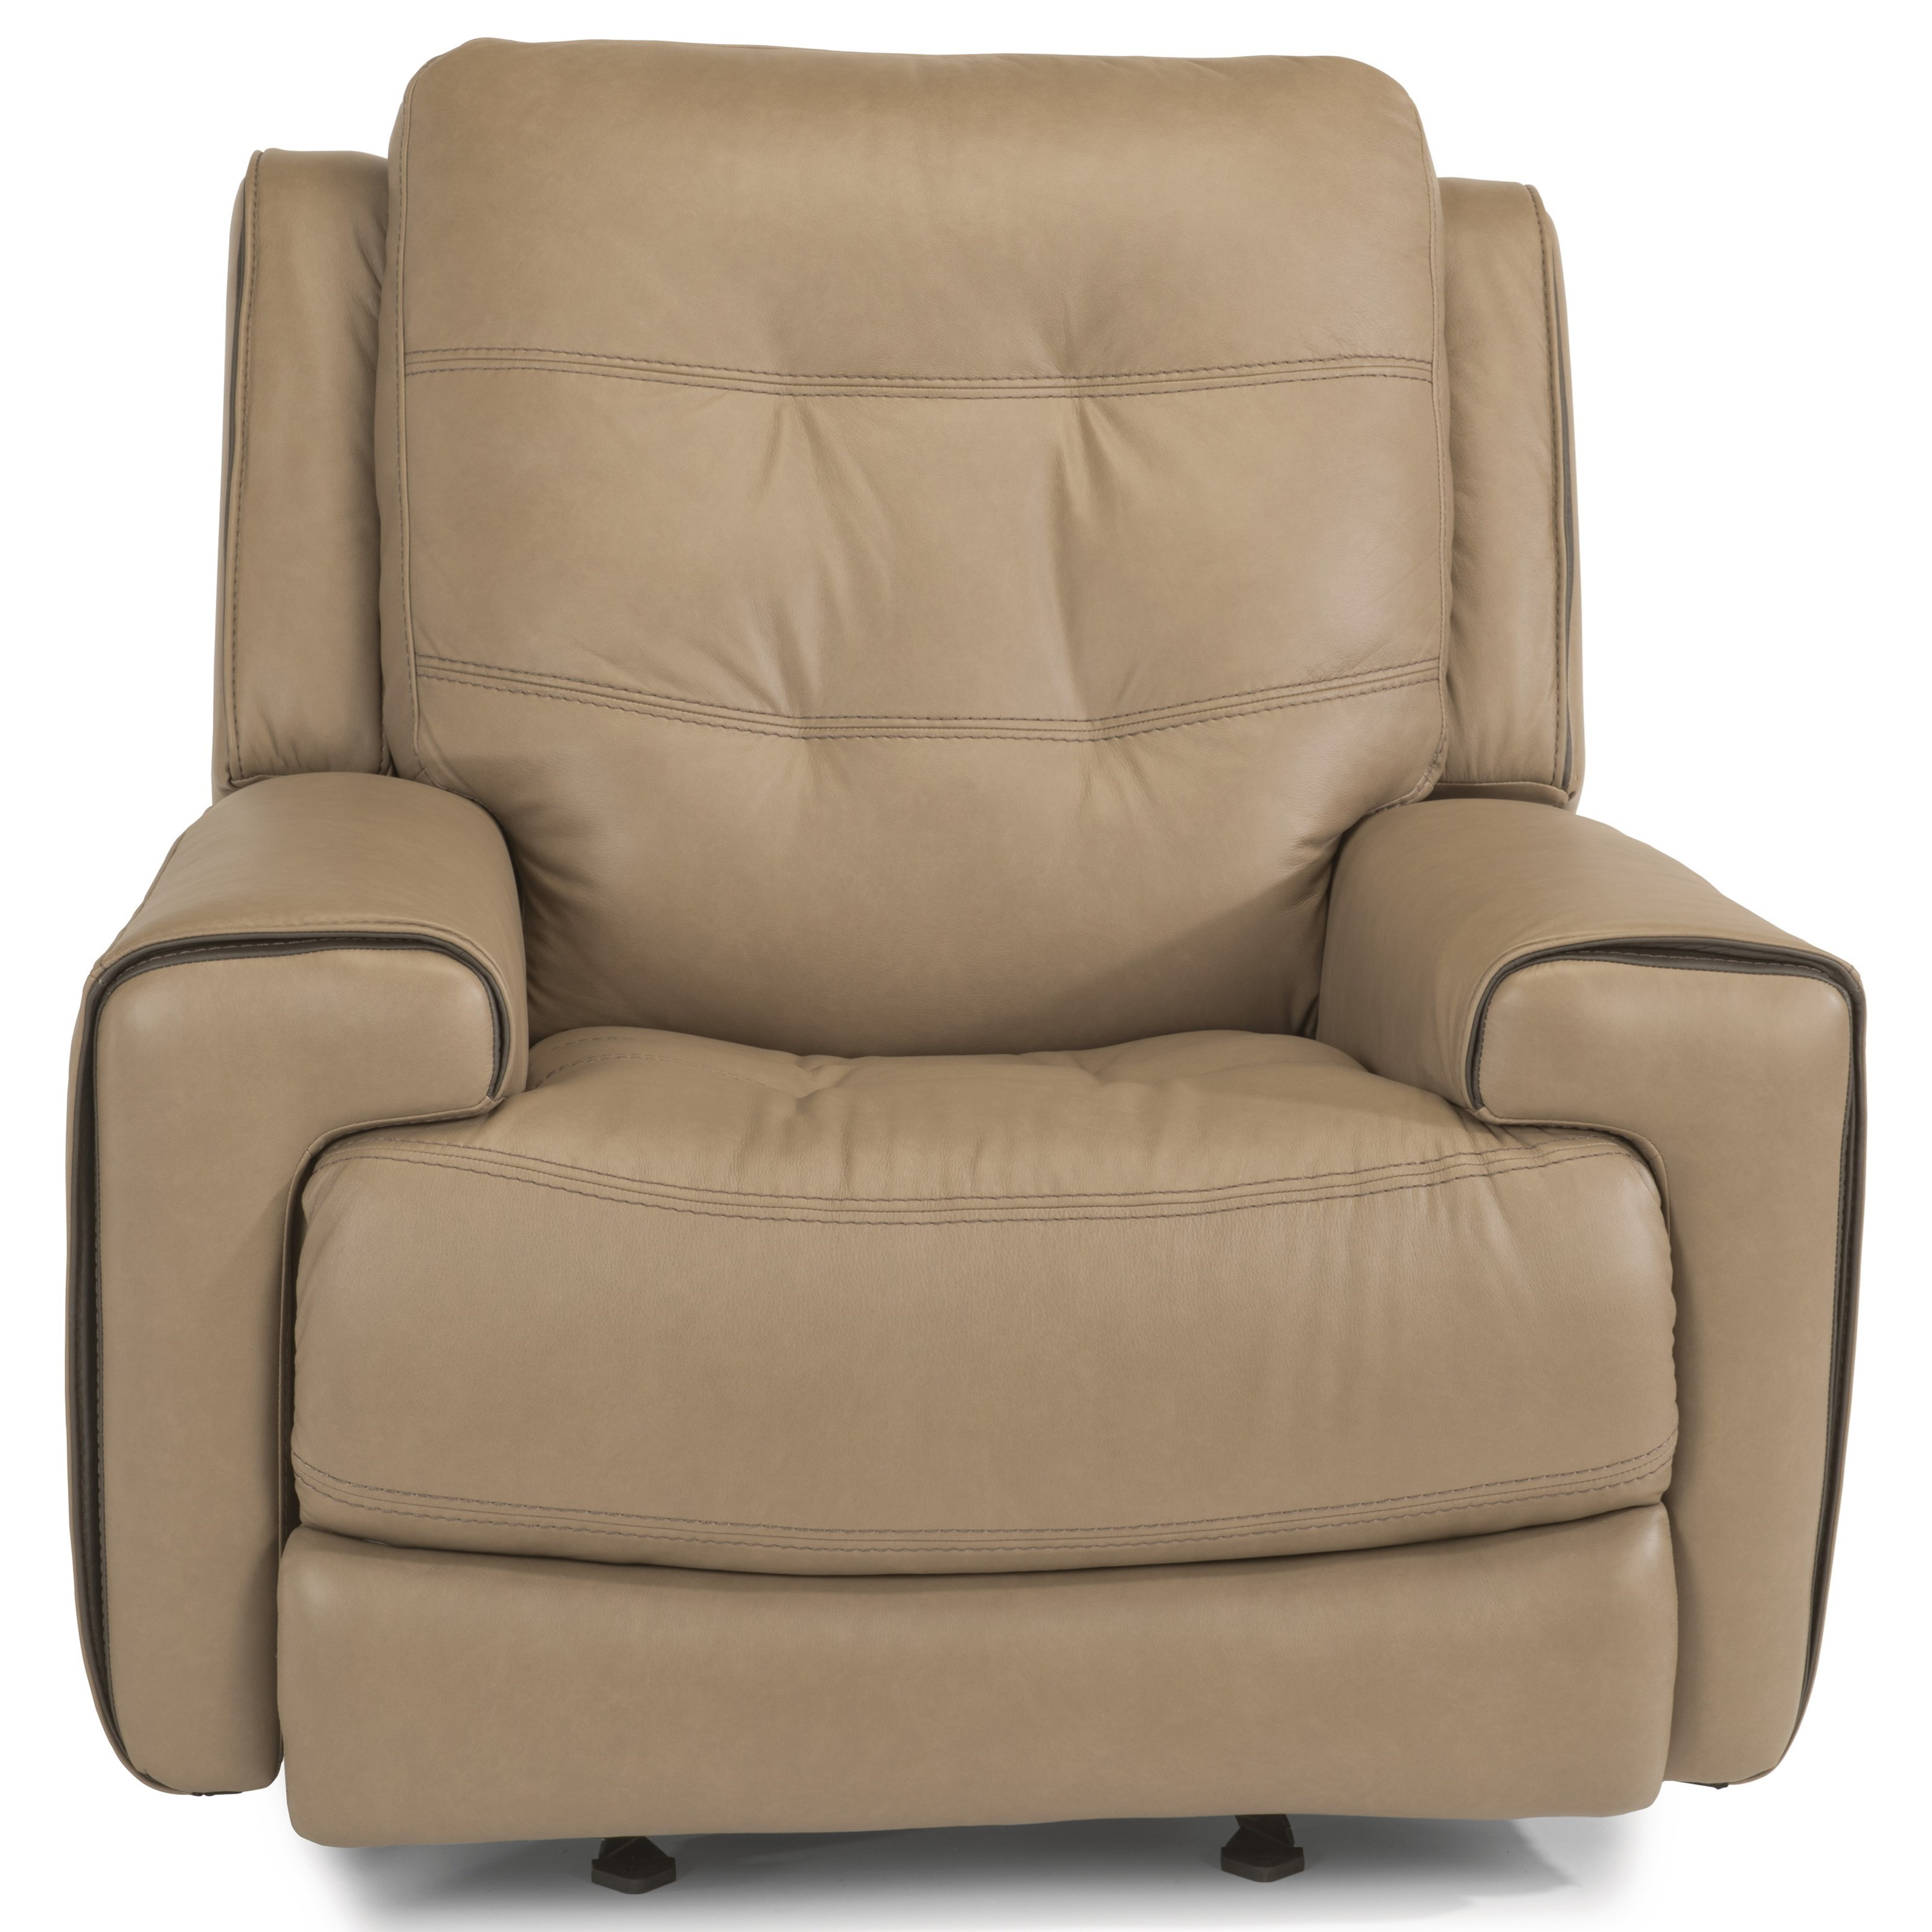 Latitudes-Wicklow PWR Gliding Leather Recliner w/PWR Headrest by Flexsteel at Walker's Furniture